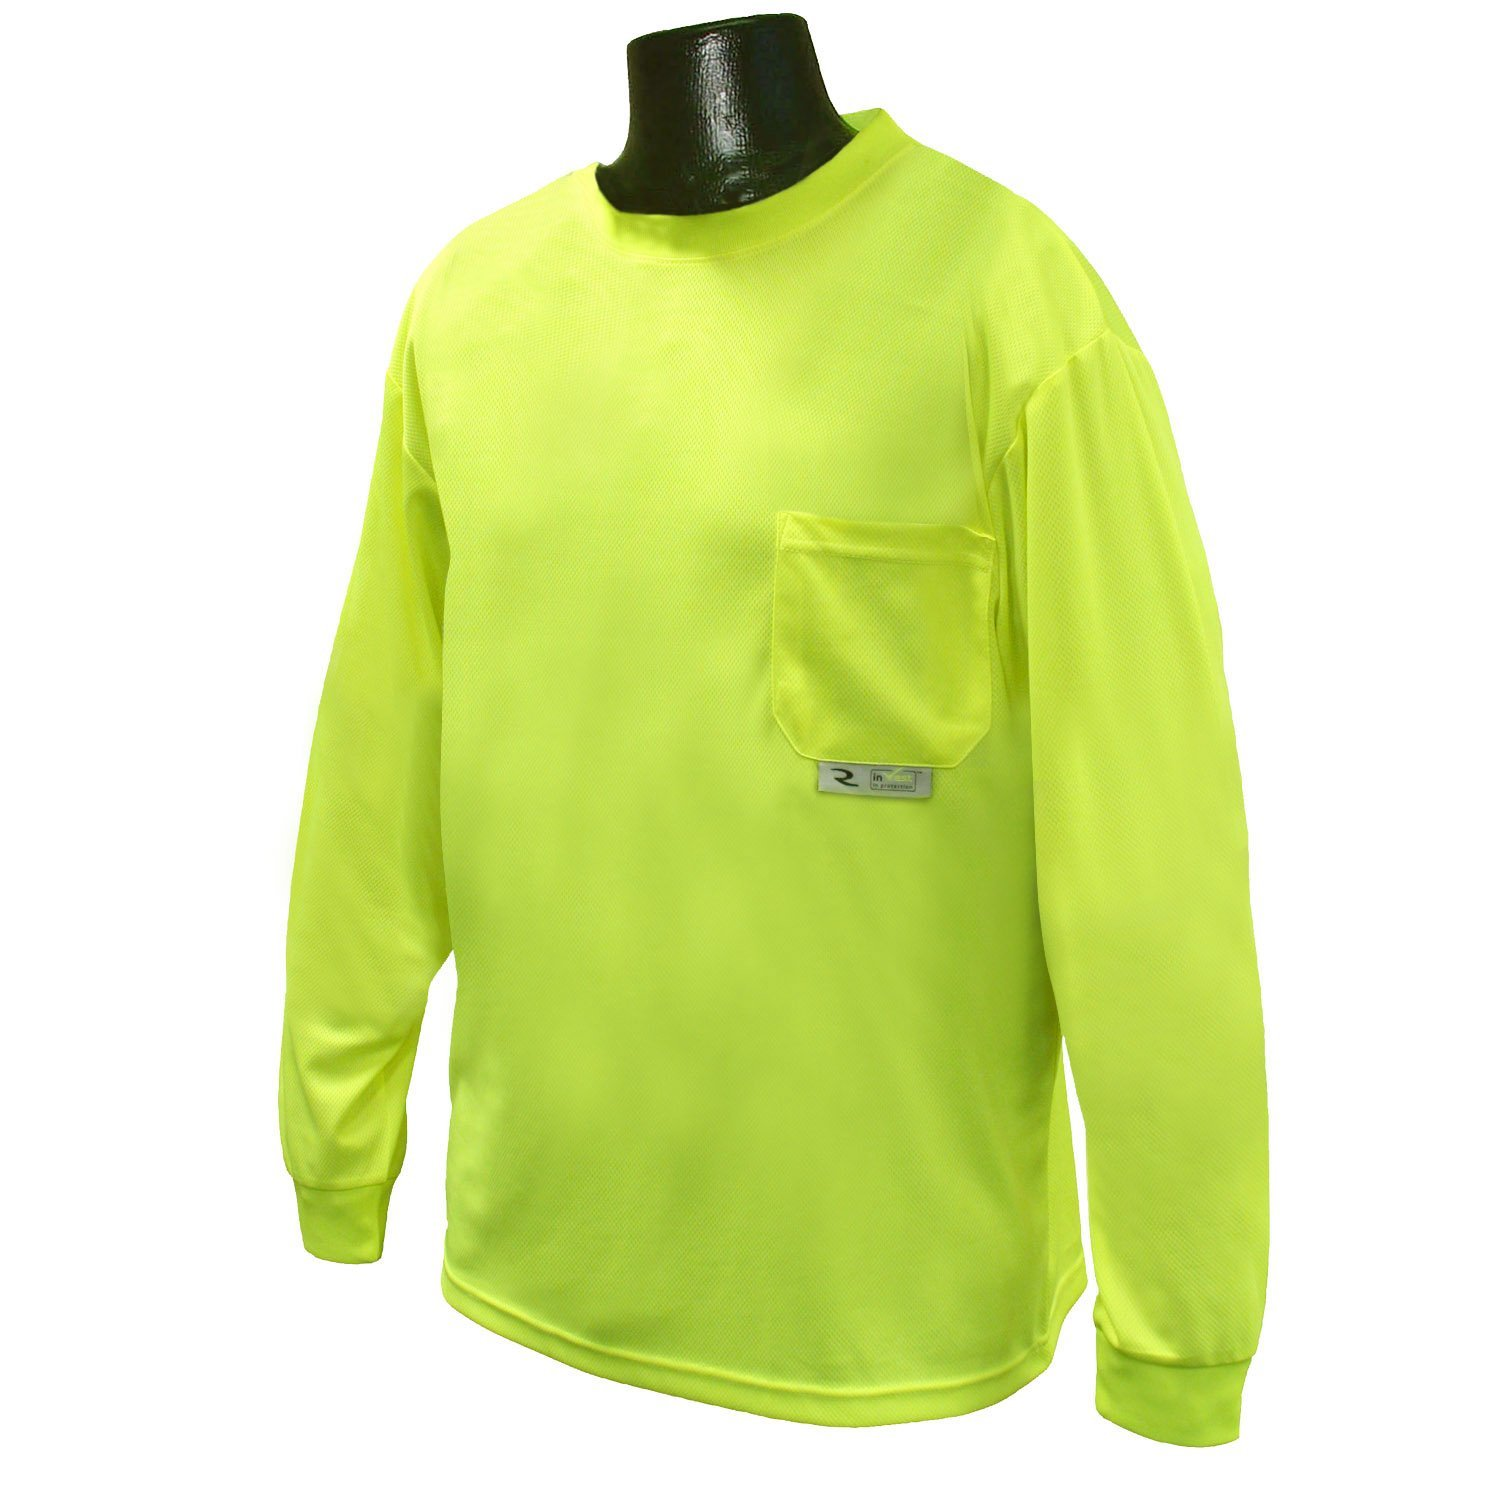 c517d062 Get Quotations · Radians ST21-NPGS-5X Polyester Mesh Non-Rated Long Sleeve  Safety T-